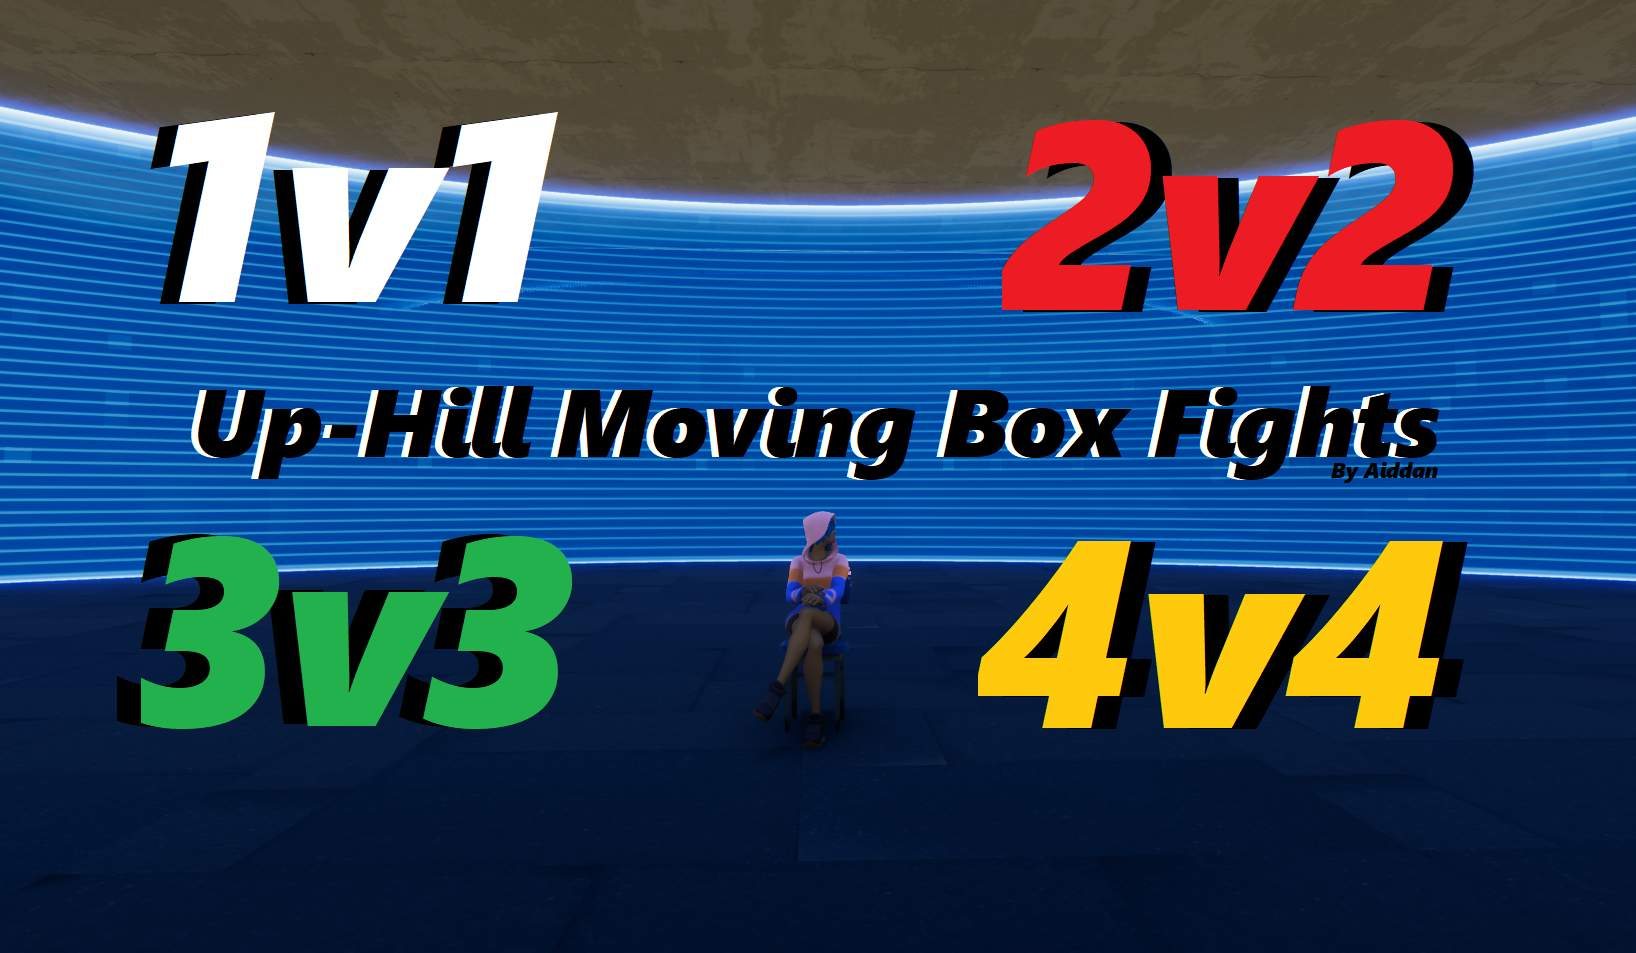 1V1/2V2/3V3/4V4 UP-HILL MOVING BOX FIGHT